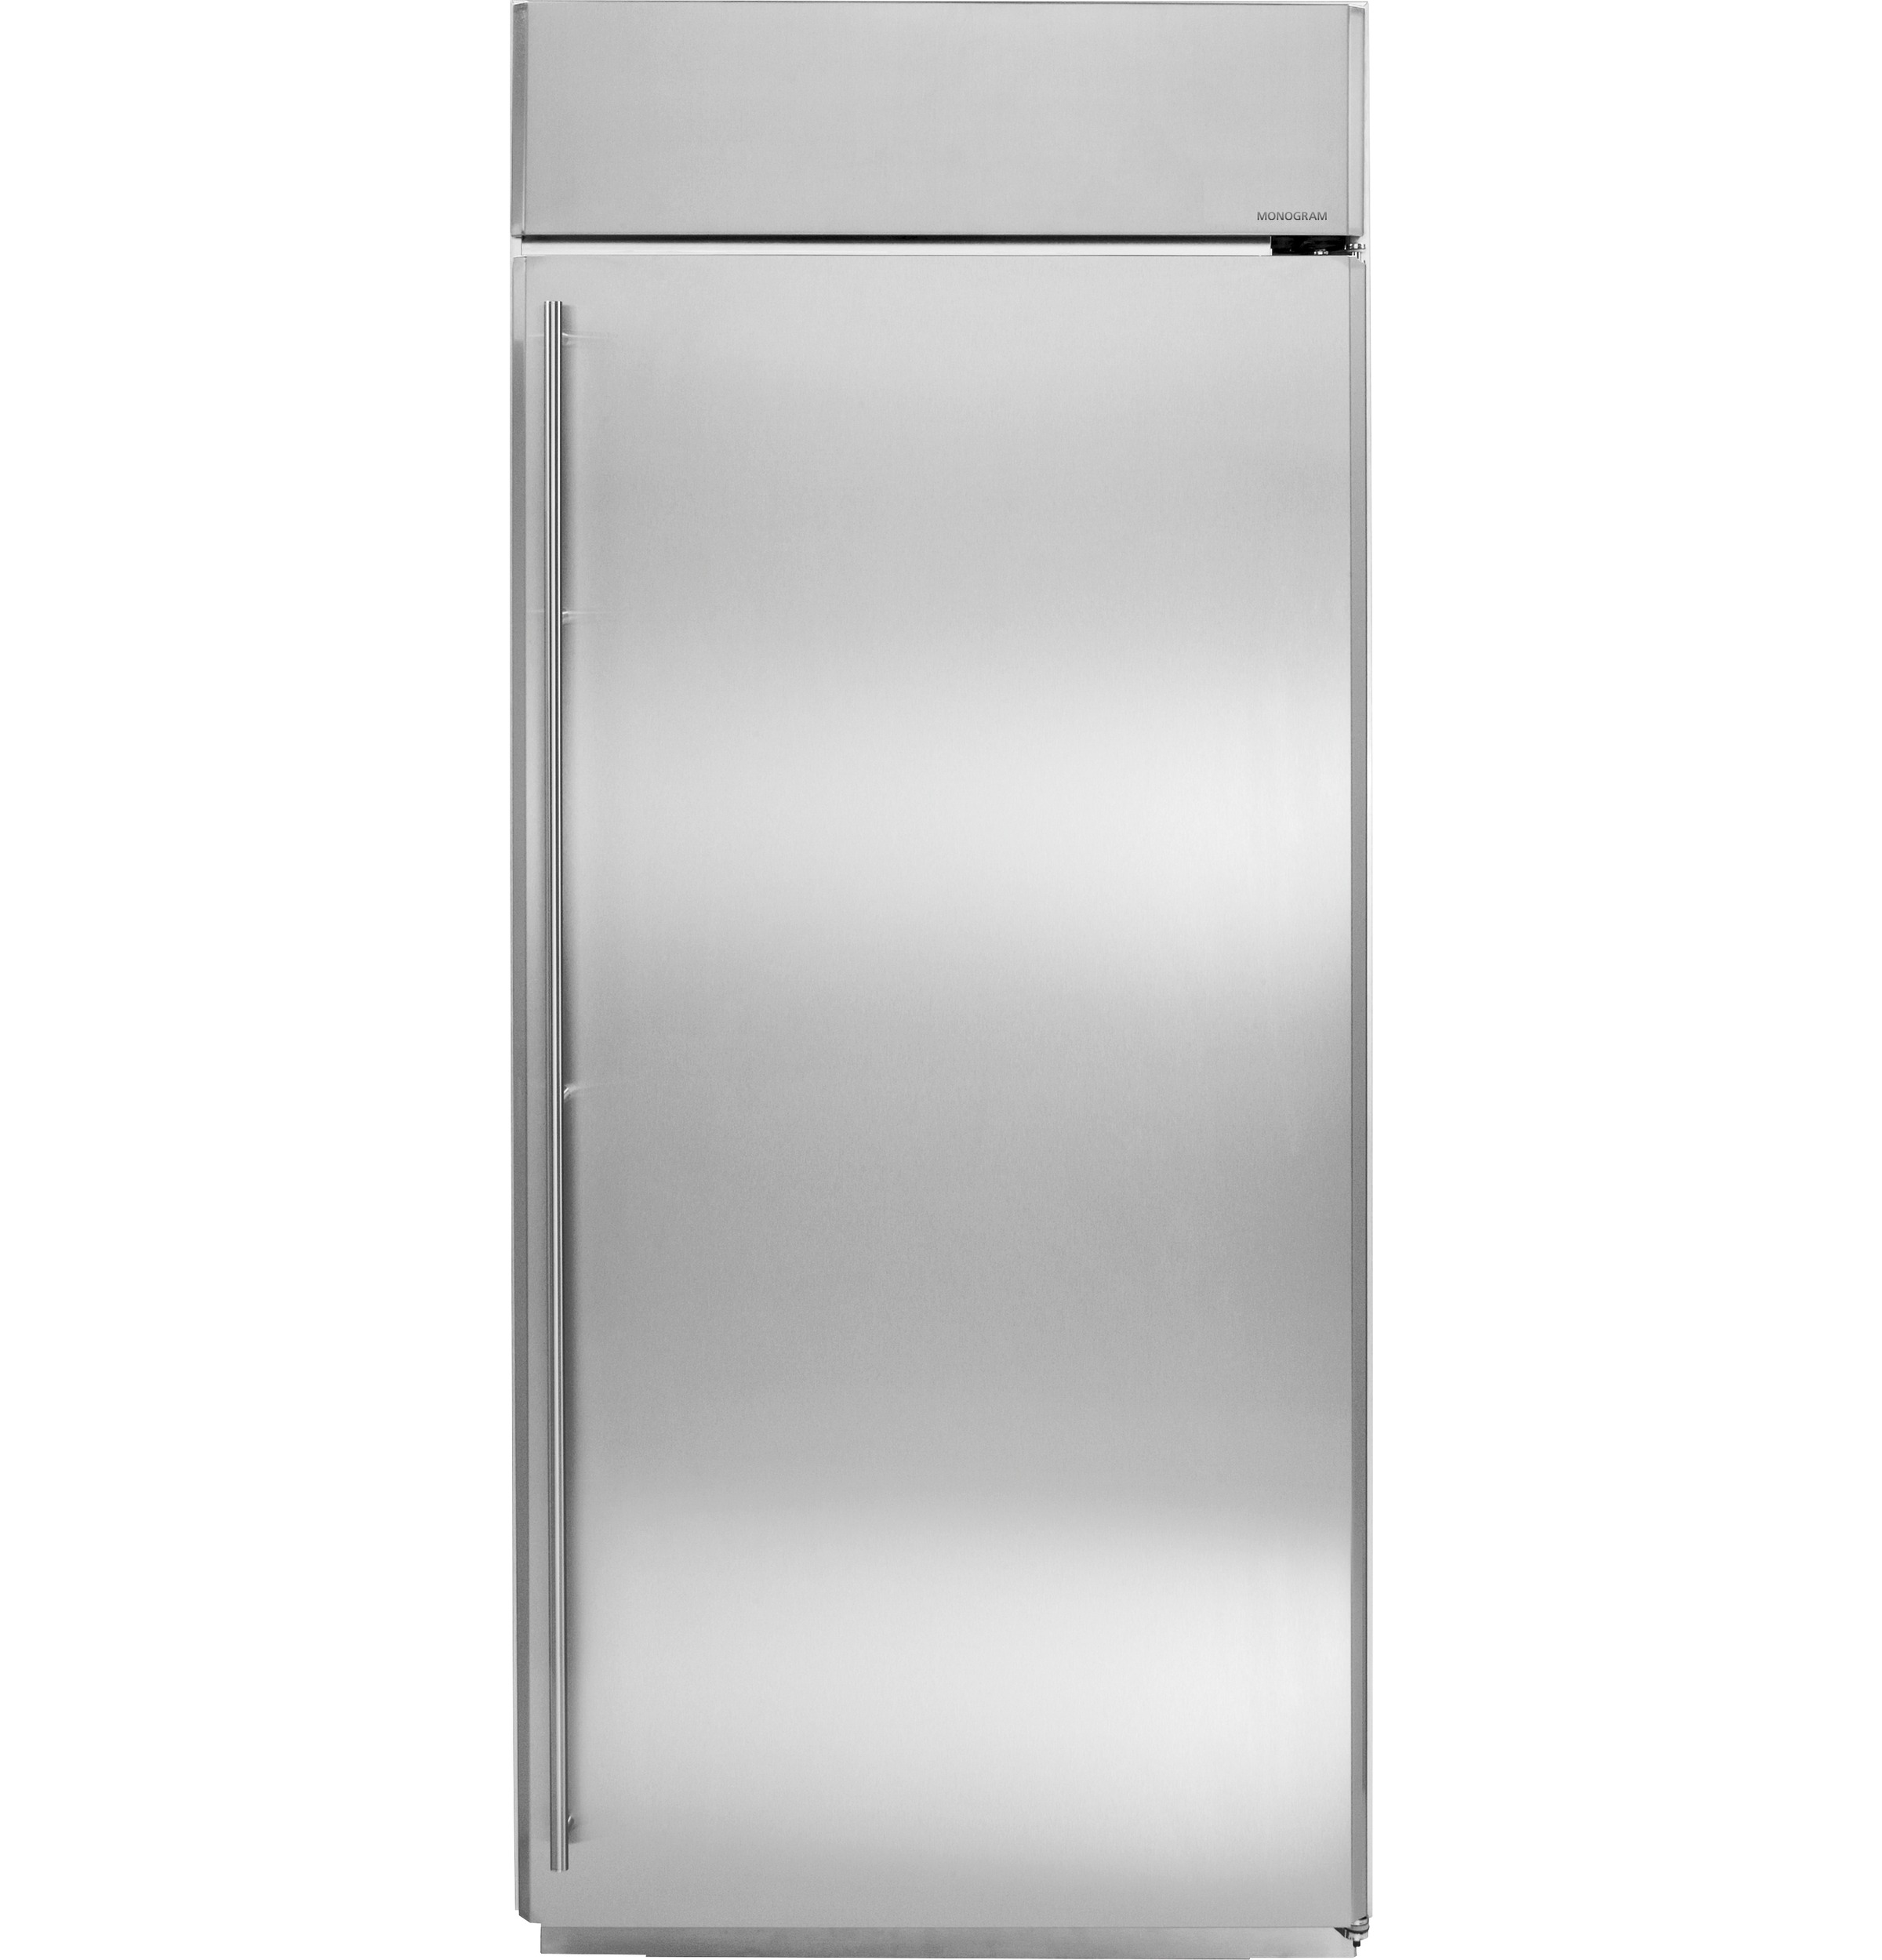 Wiring Diagram Freezerless Refrigerator Free For You Stainless Steel Wire Simple Diagrams Rh 38 Studio011 De Full Size Refrigerators